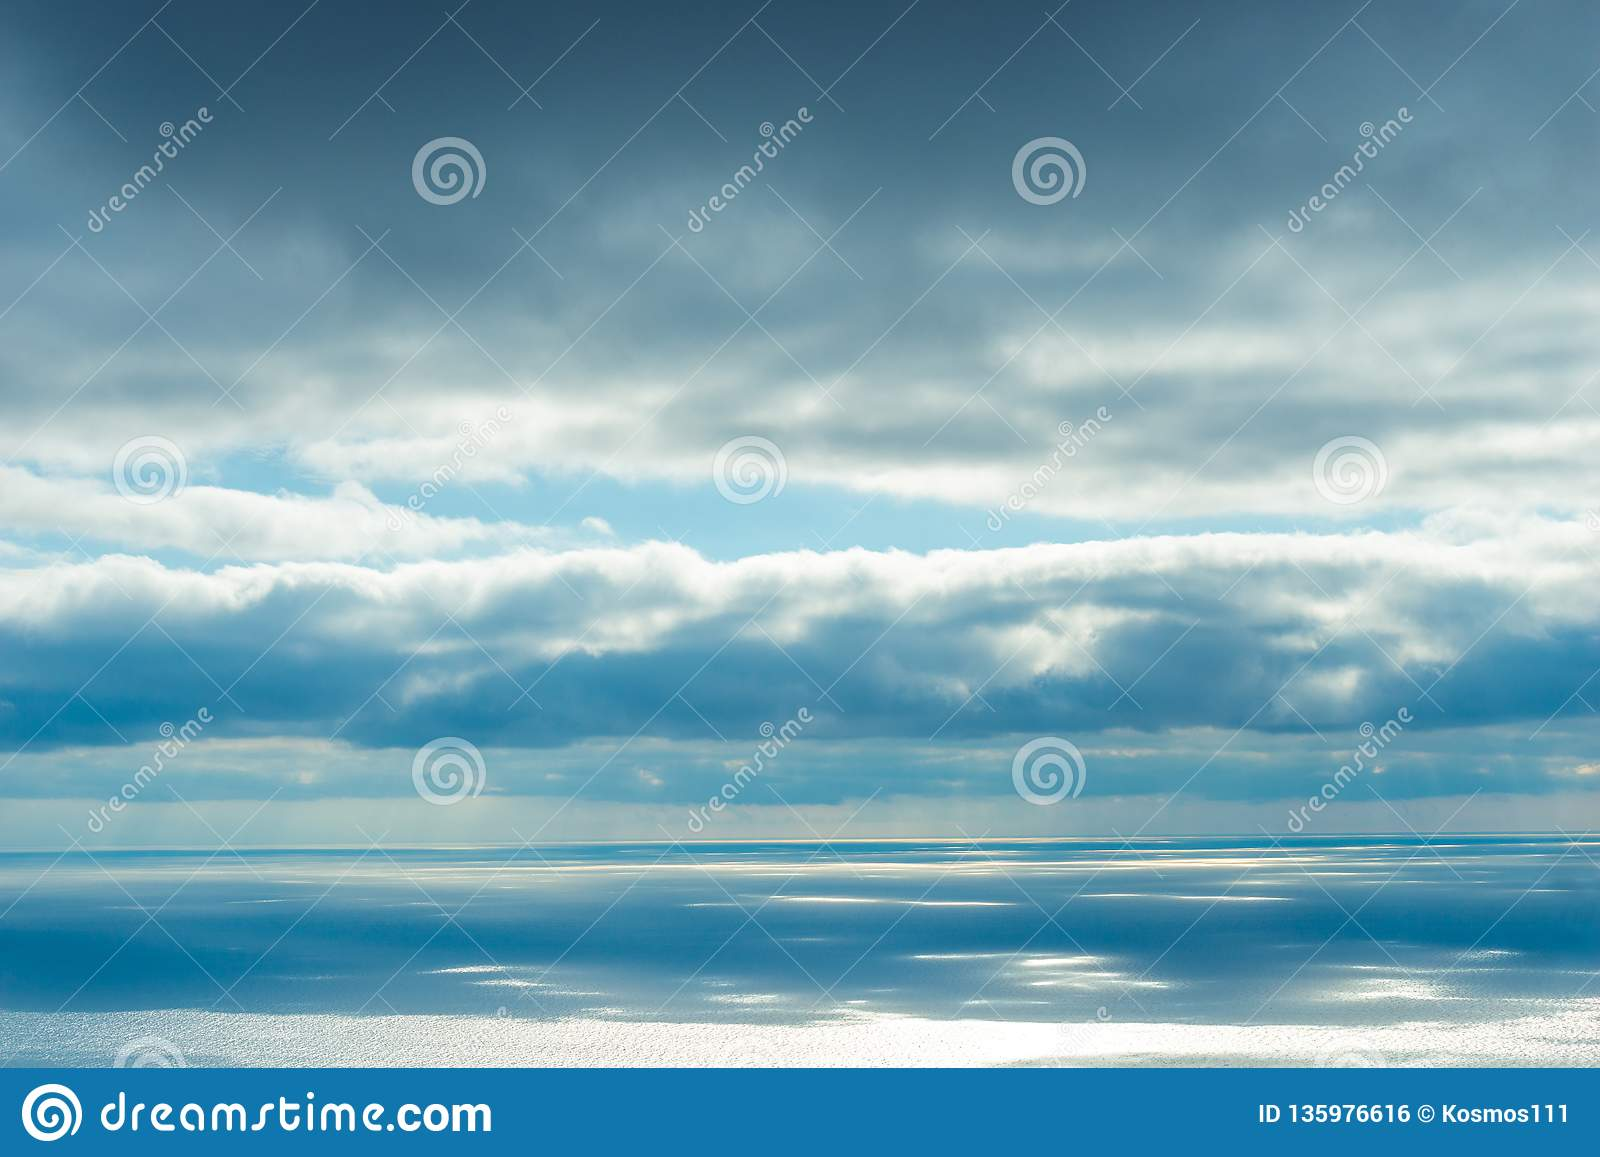 The majestic sky and sea, the view of the horizon